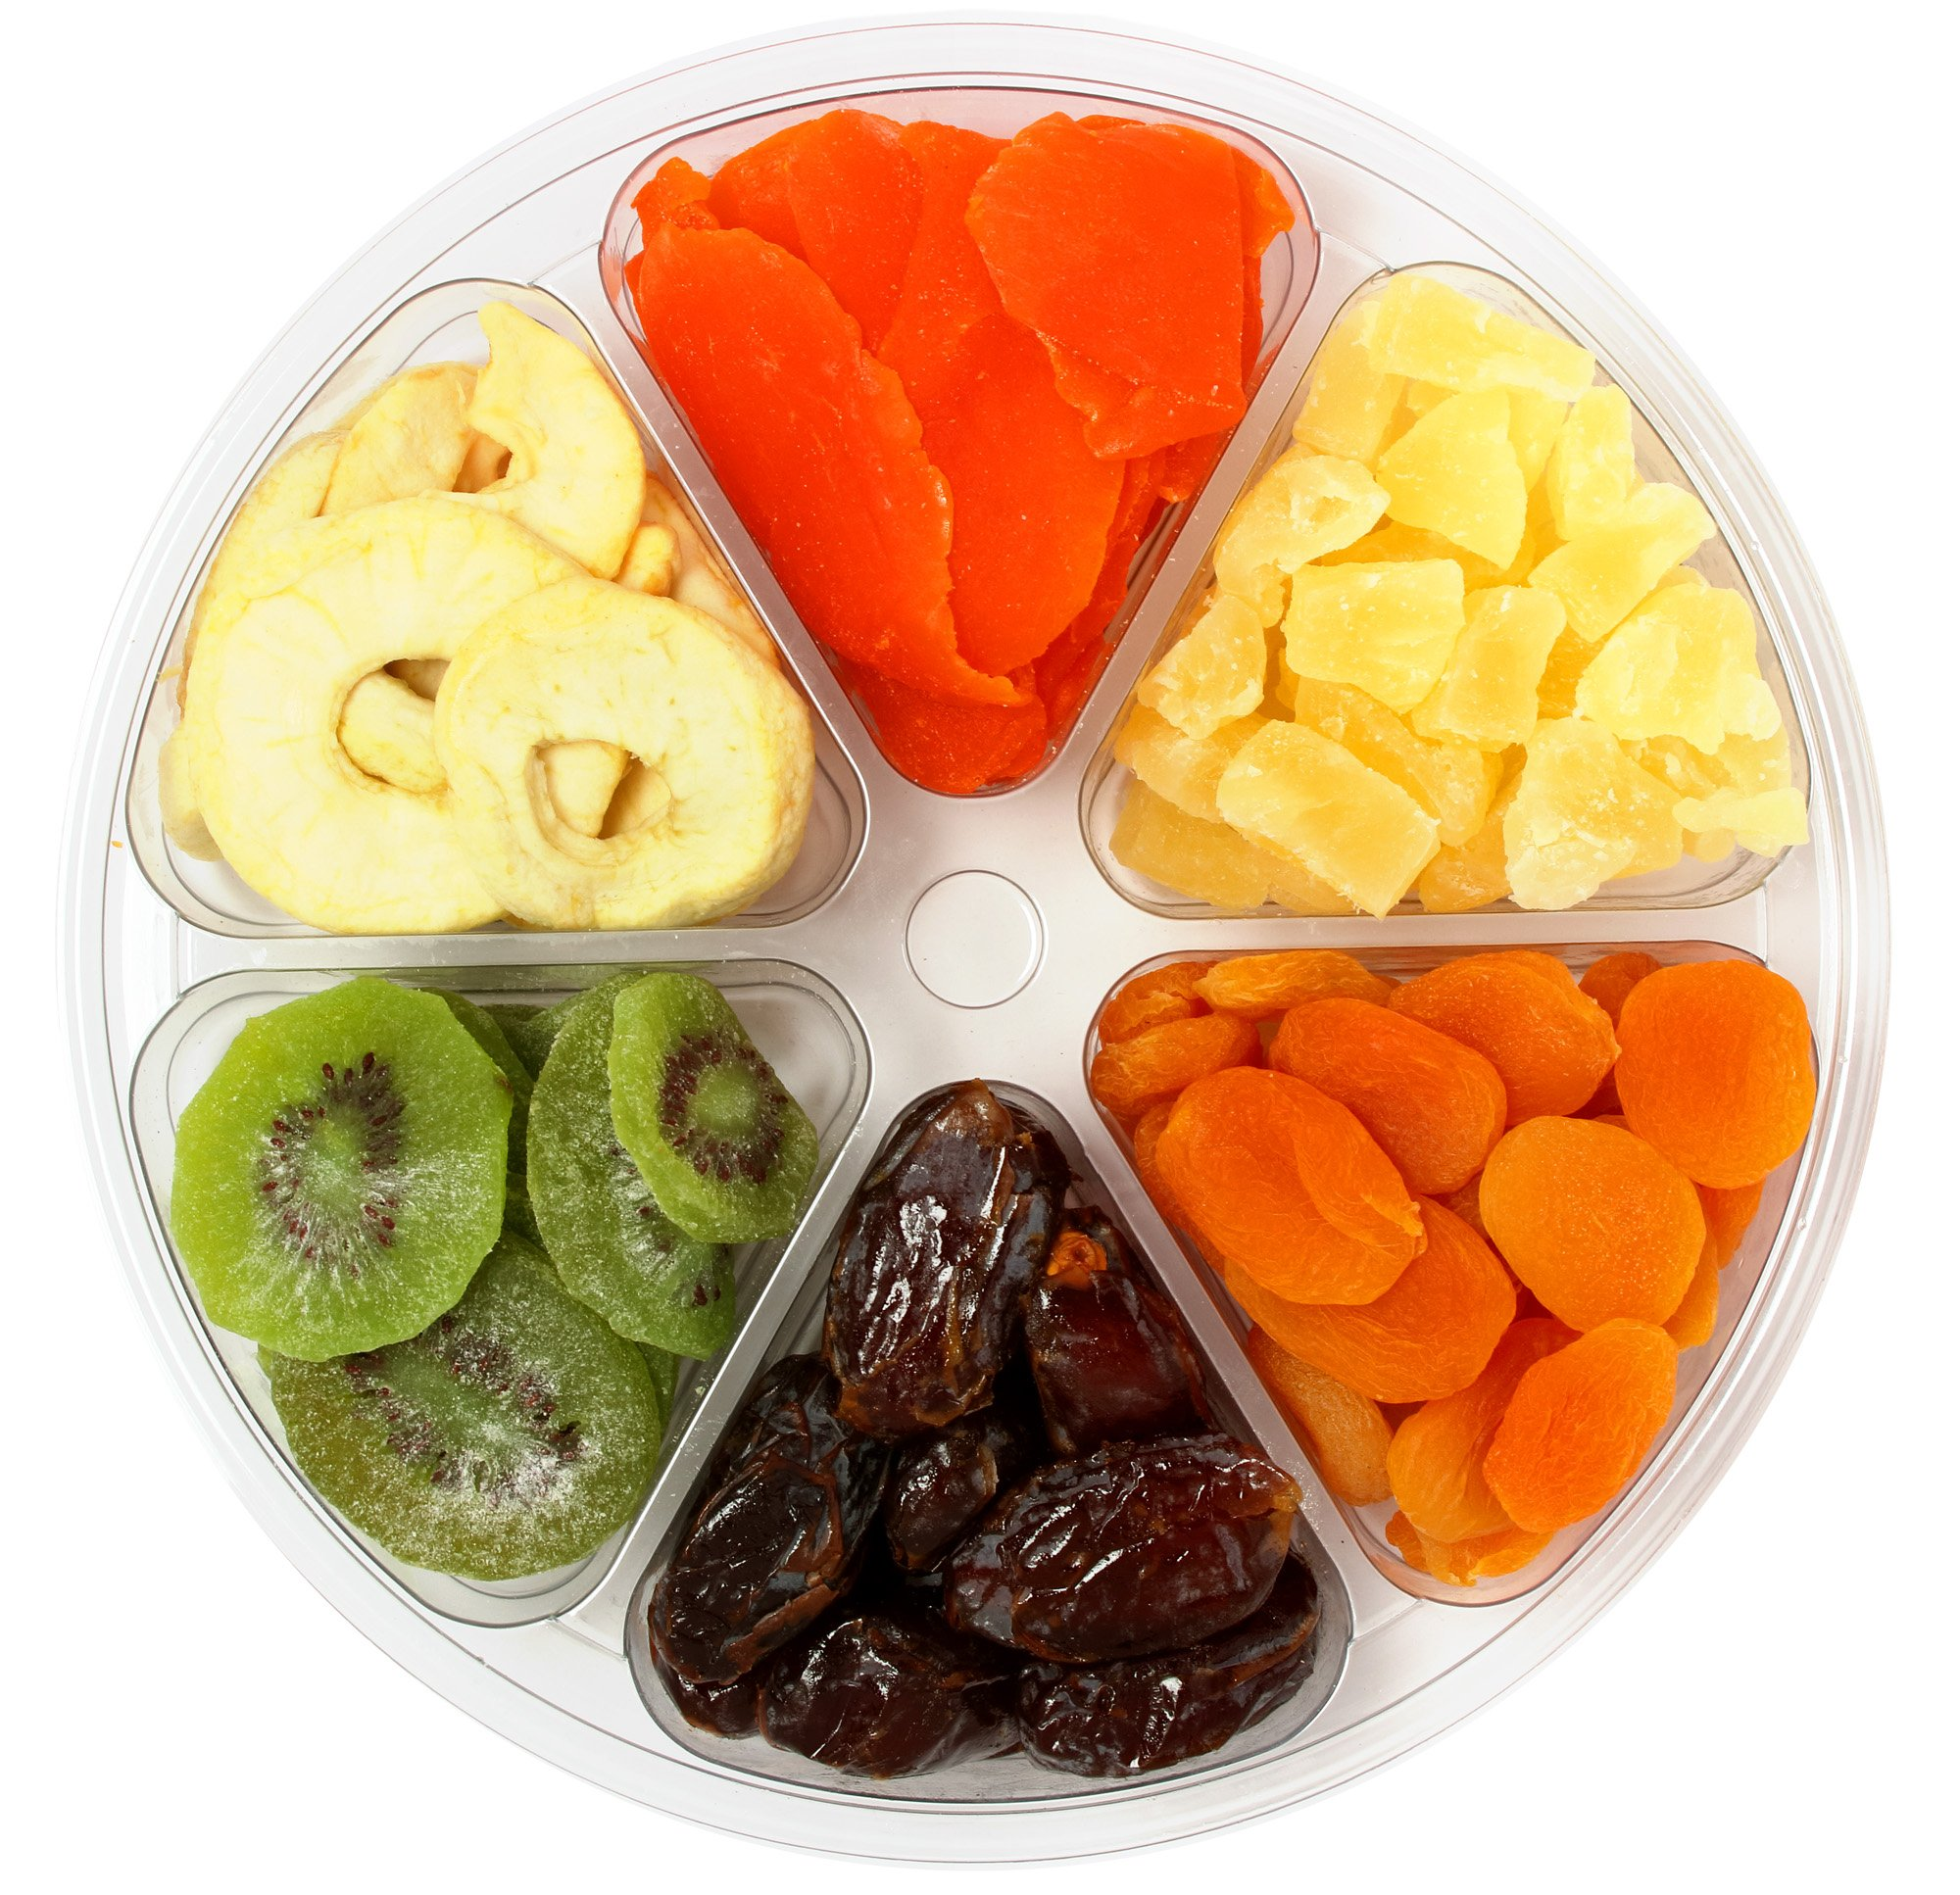 Sincerely Nuts Dried Mixed Fruit Tray | Kosher Certified Apple Rings, Medjool Dates, Turkish Apricots, Pineapple Tidbits, Kiwi Slices & Mango Slices | Supremely Fresh